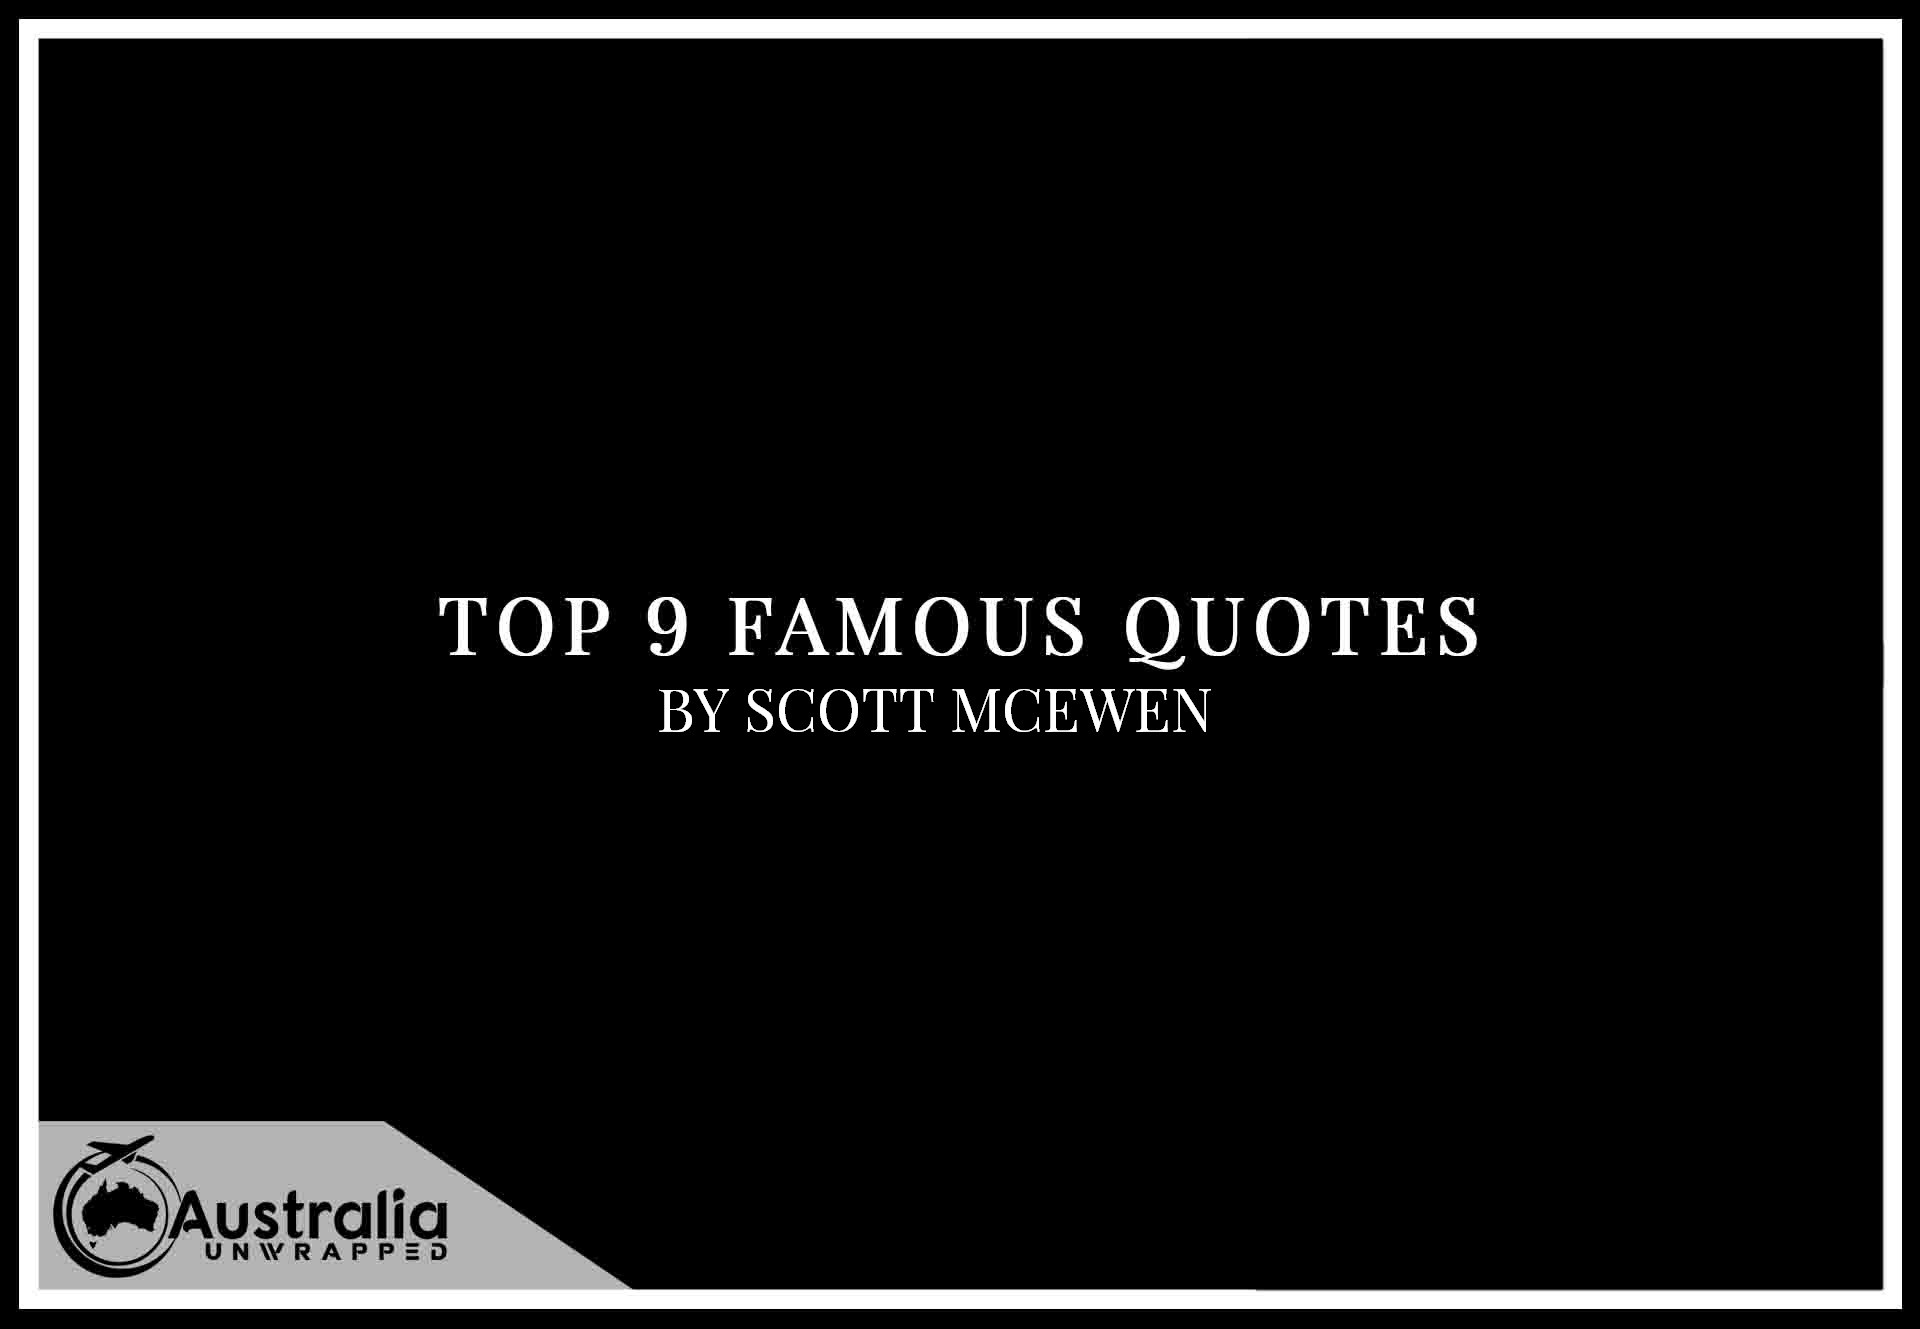 Top 9 Famous Quotes by Author Scott McEwen